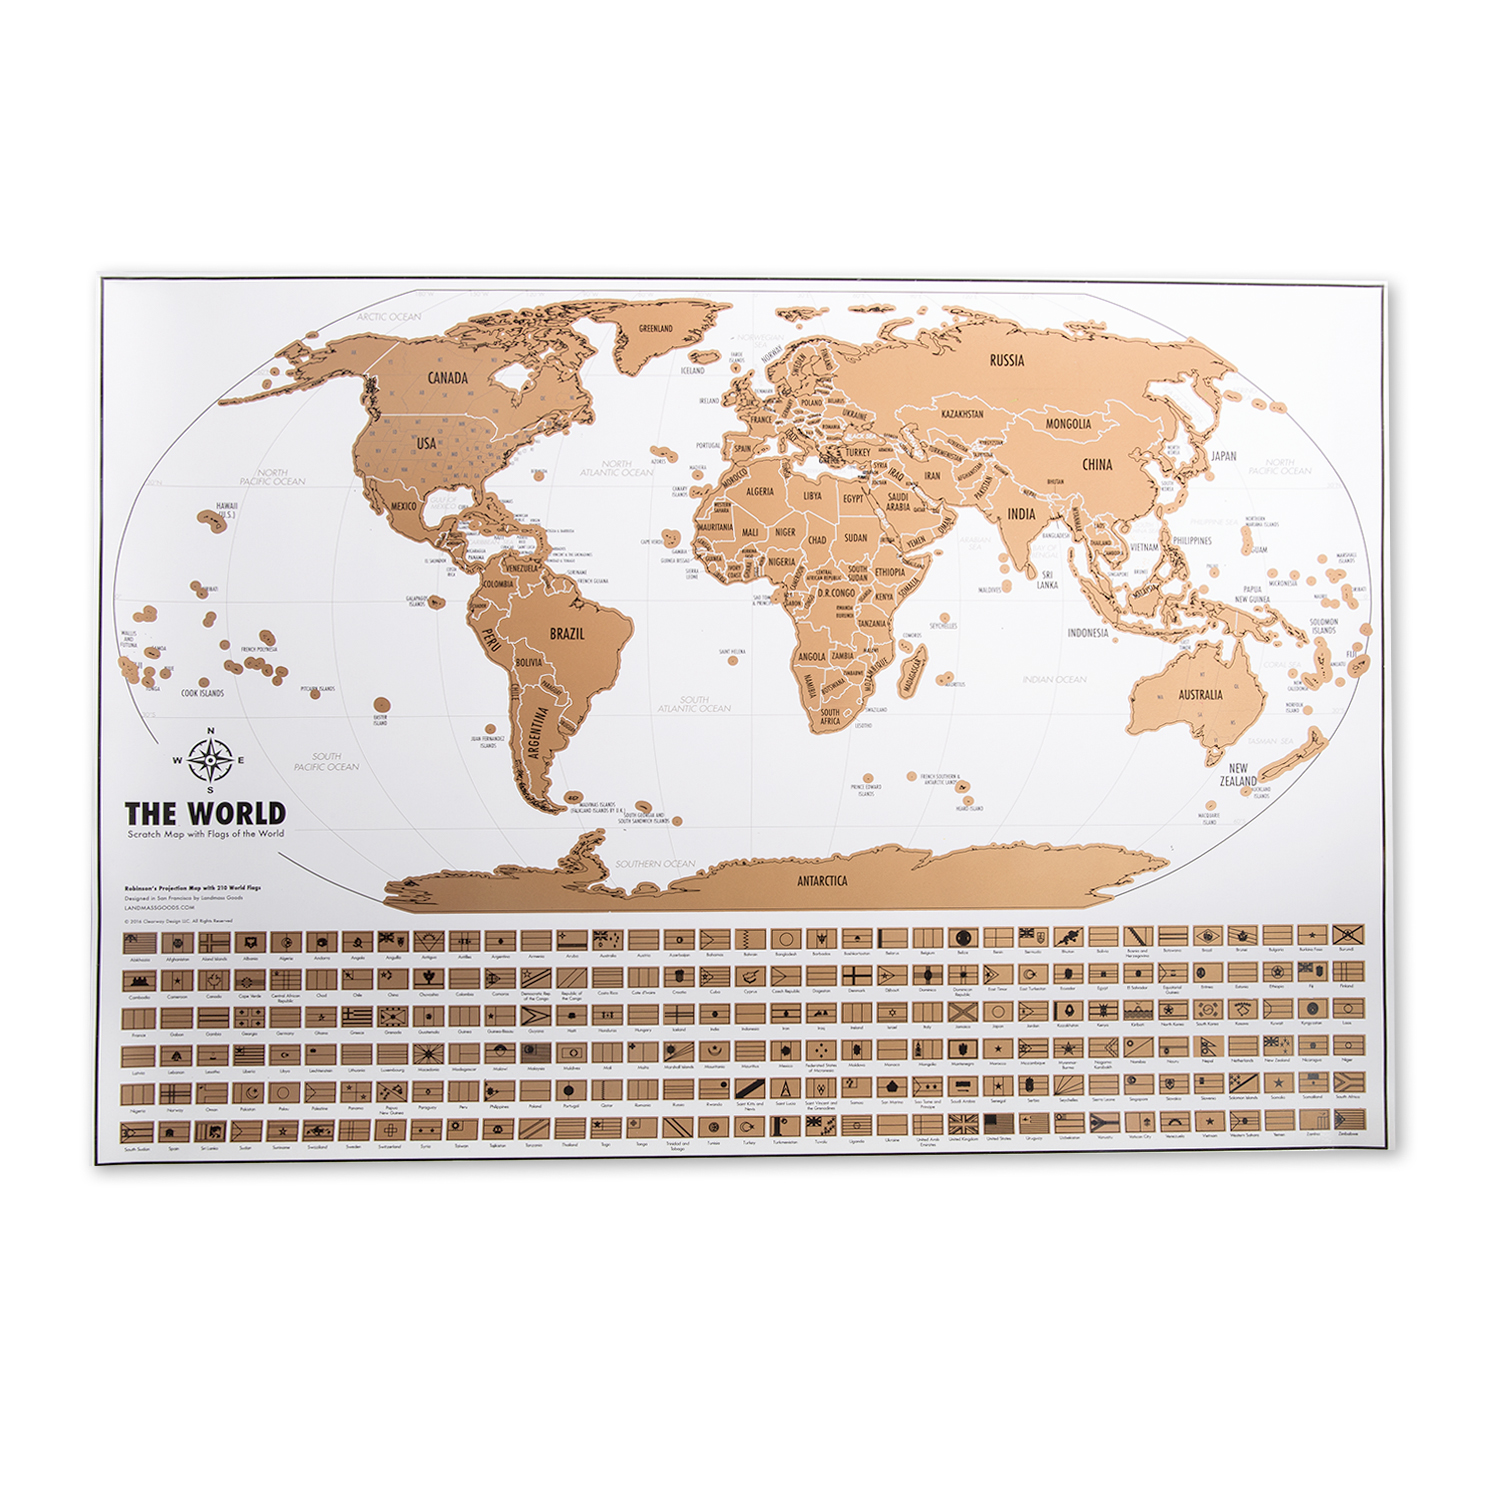 Travel Tracker Map Landmass Goods Touch Of Modern - Where have you been travel map